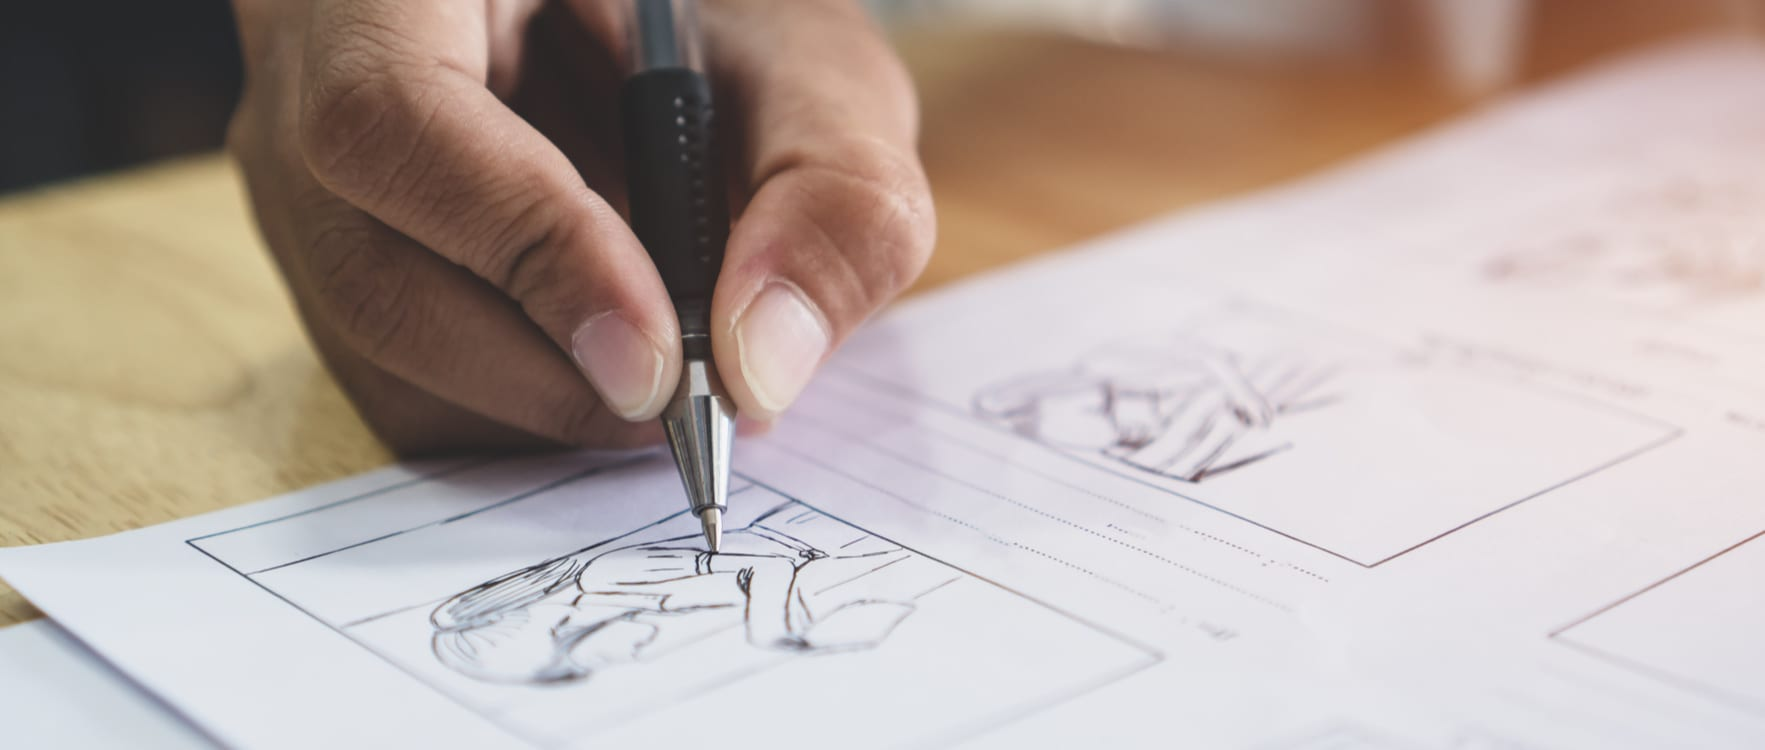 Male hand drawing a storyboard